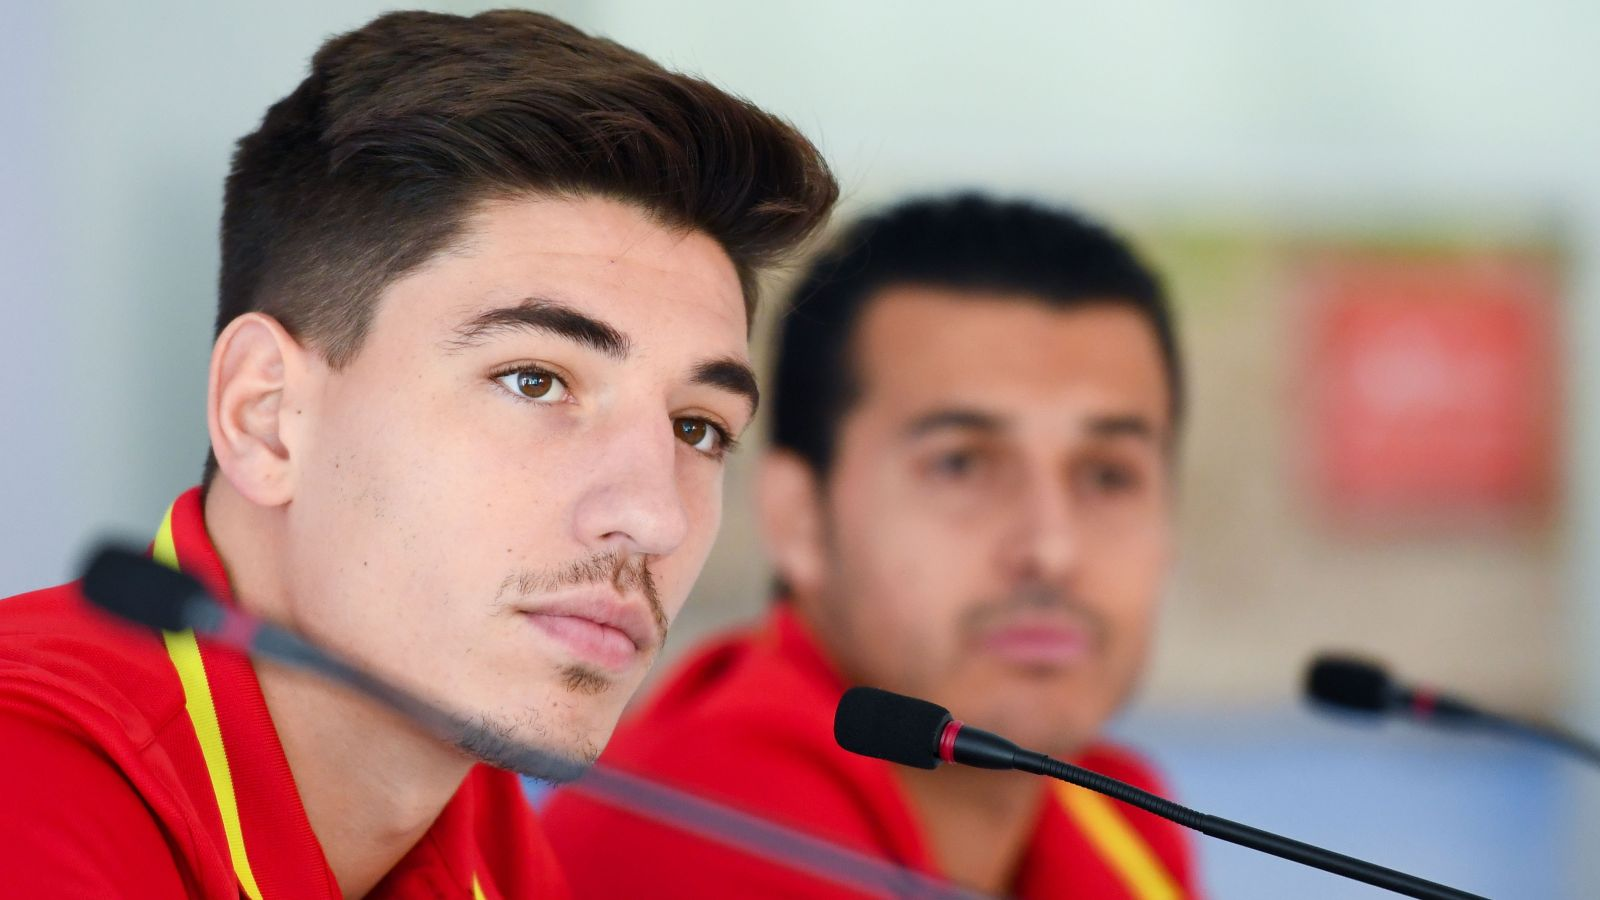 Arsenal defender Bellerin included in Spain's Euro 2016 squad